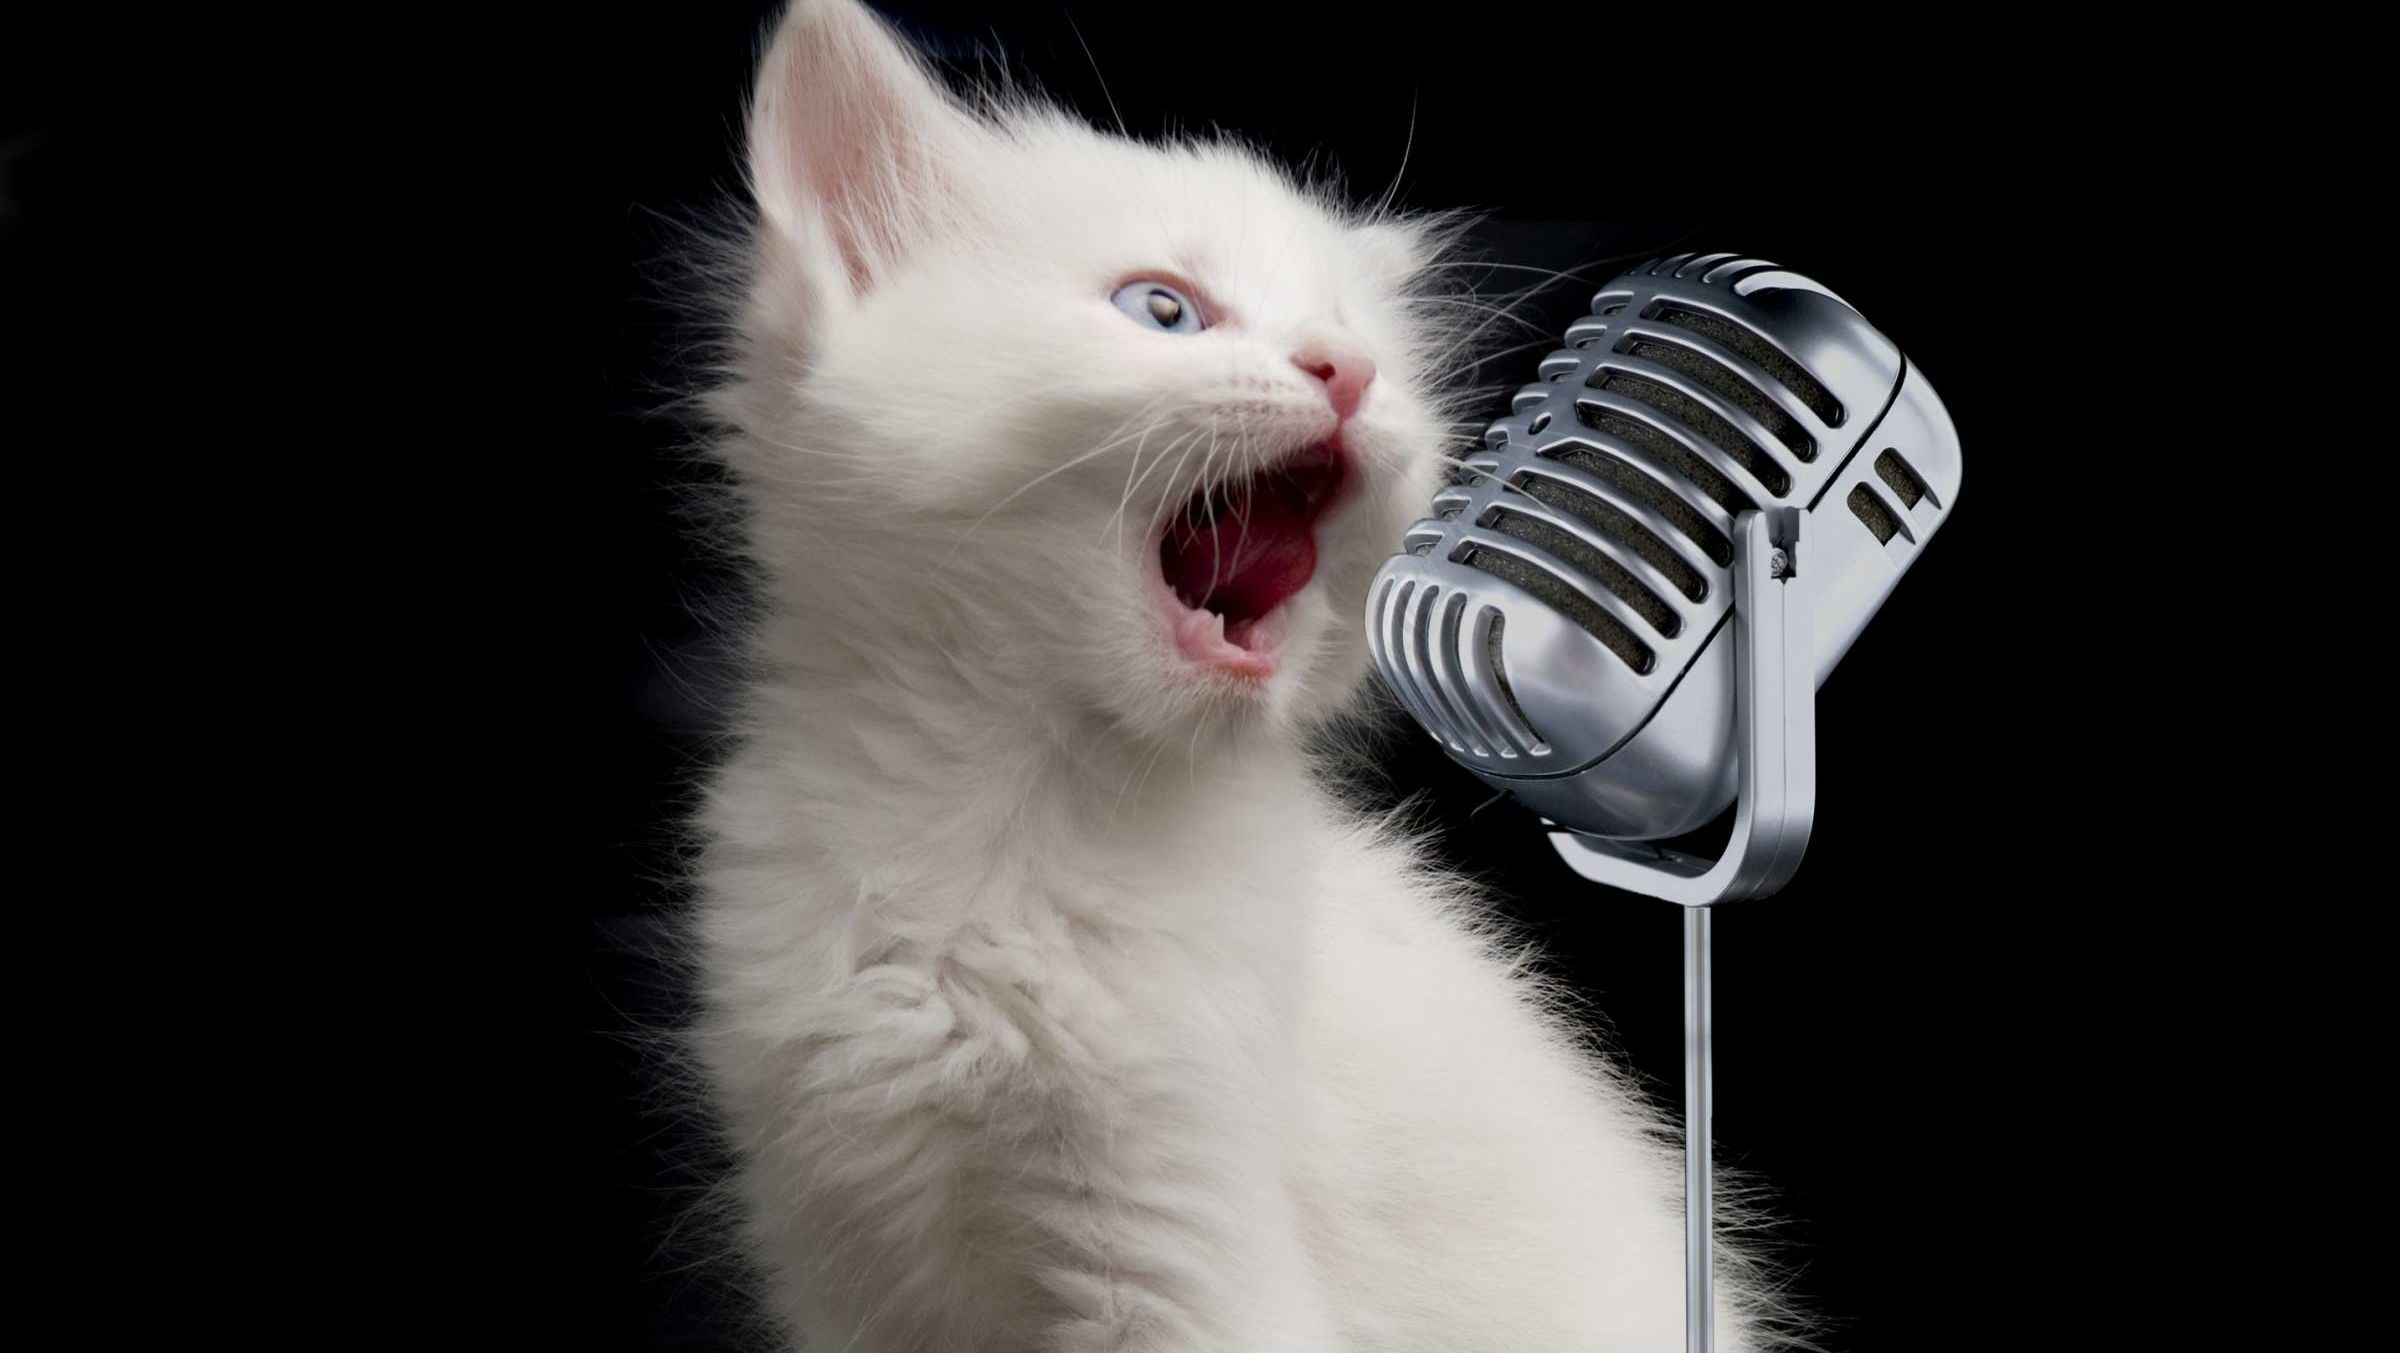 If You've Always Imagined What 'Bohemian Rhapsody' Would Sound Like If Sung By Cats, Wonder No More